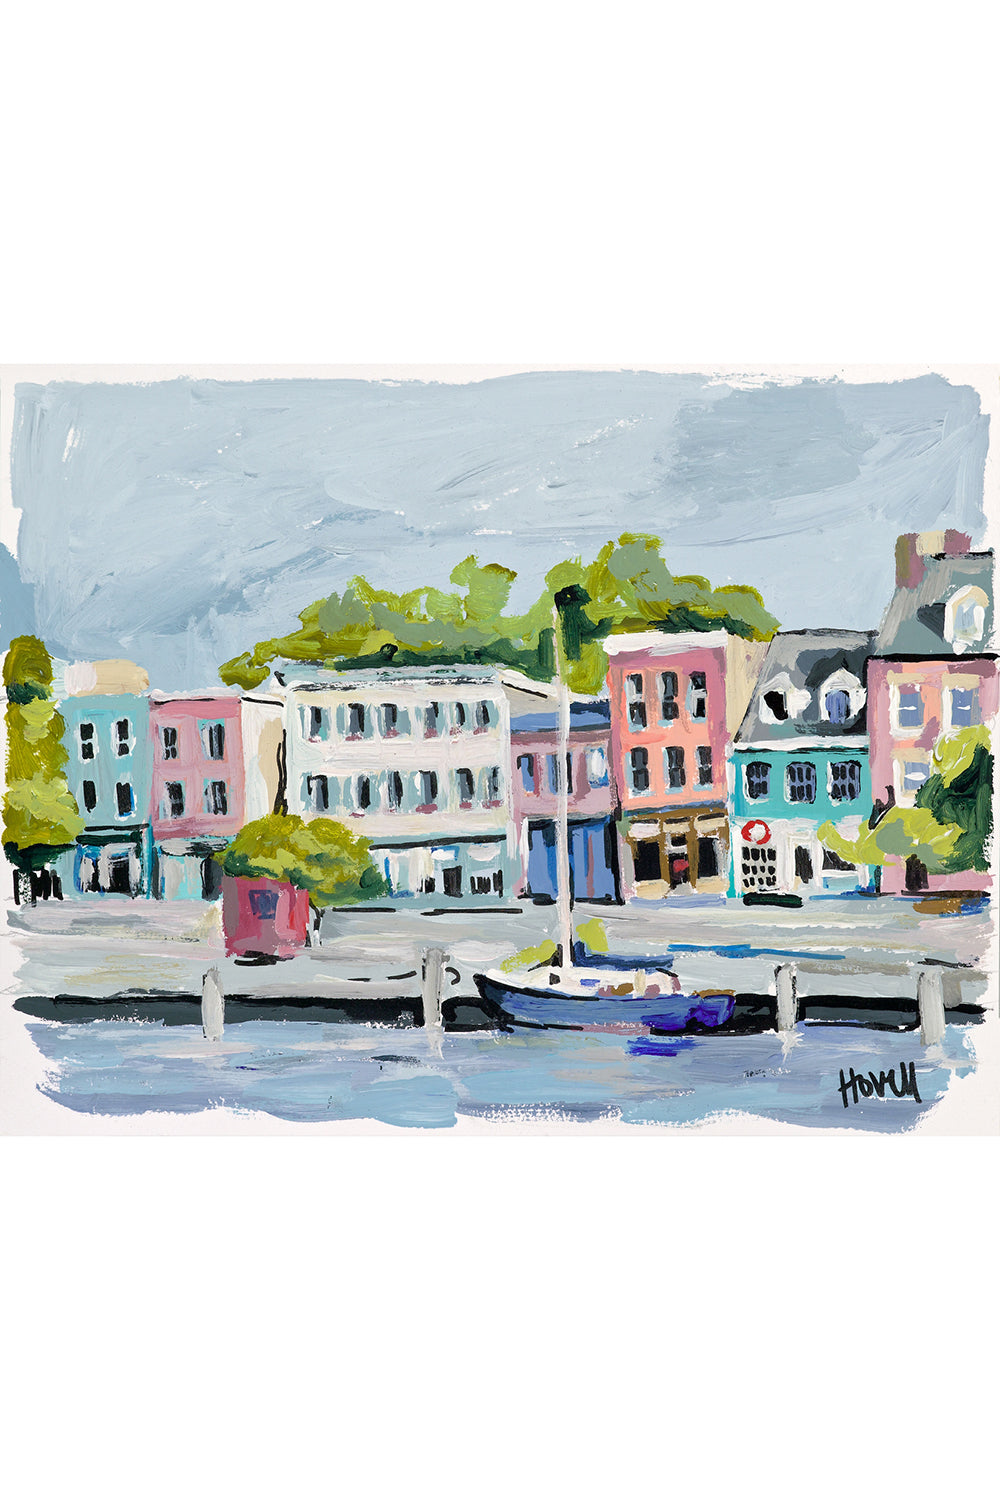 Kim Hovell Matted Print - Fells Point Fleet Street